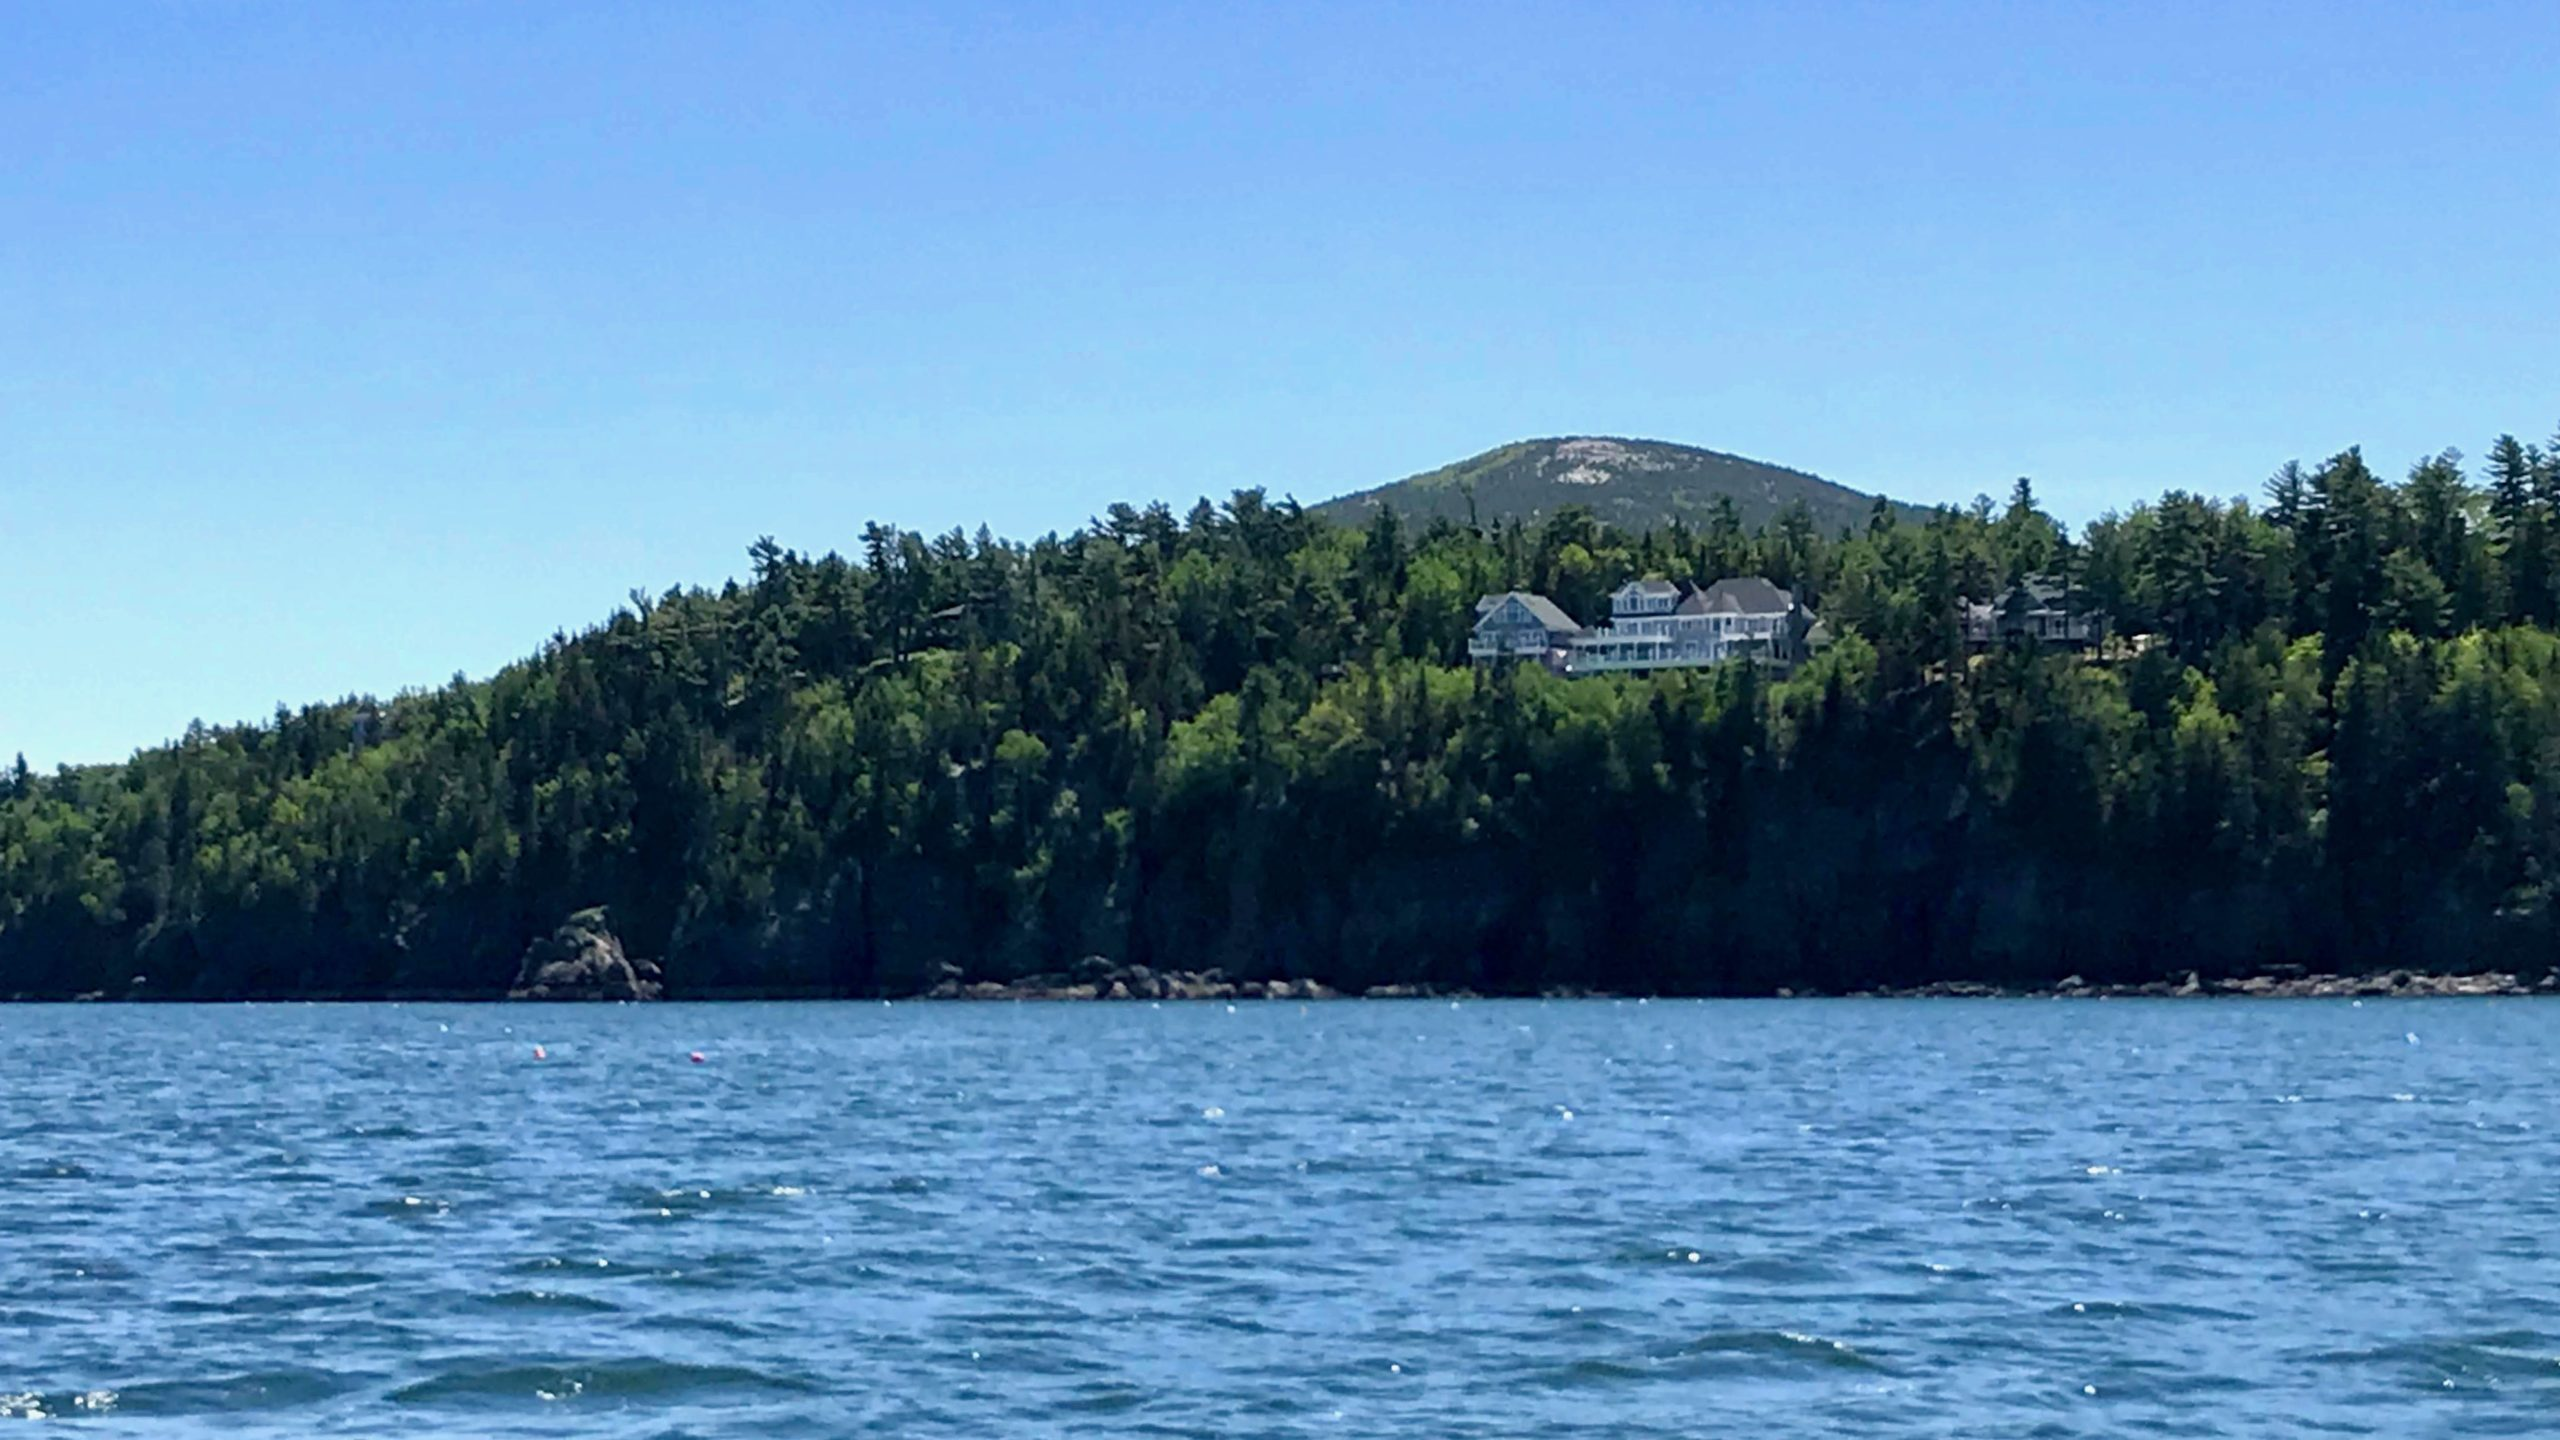 bar harbor mer peche villas